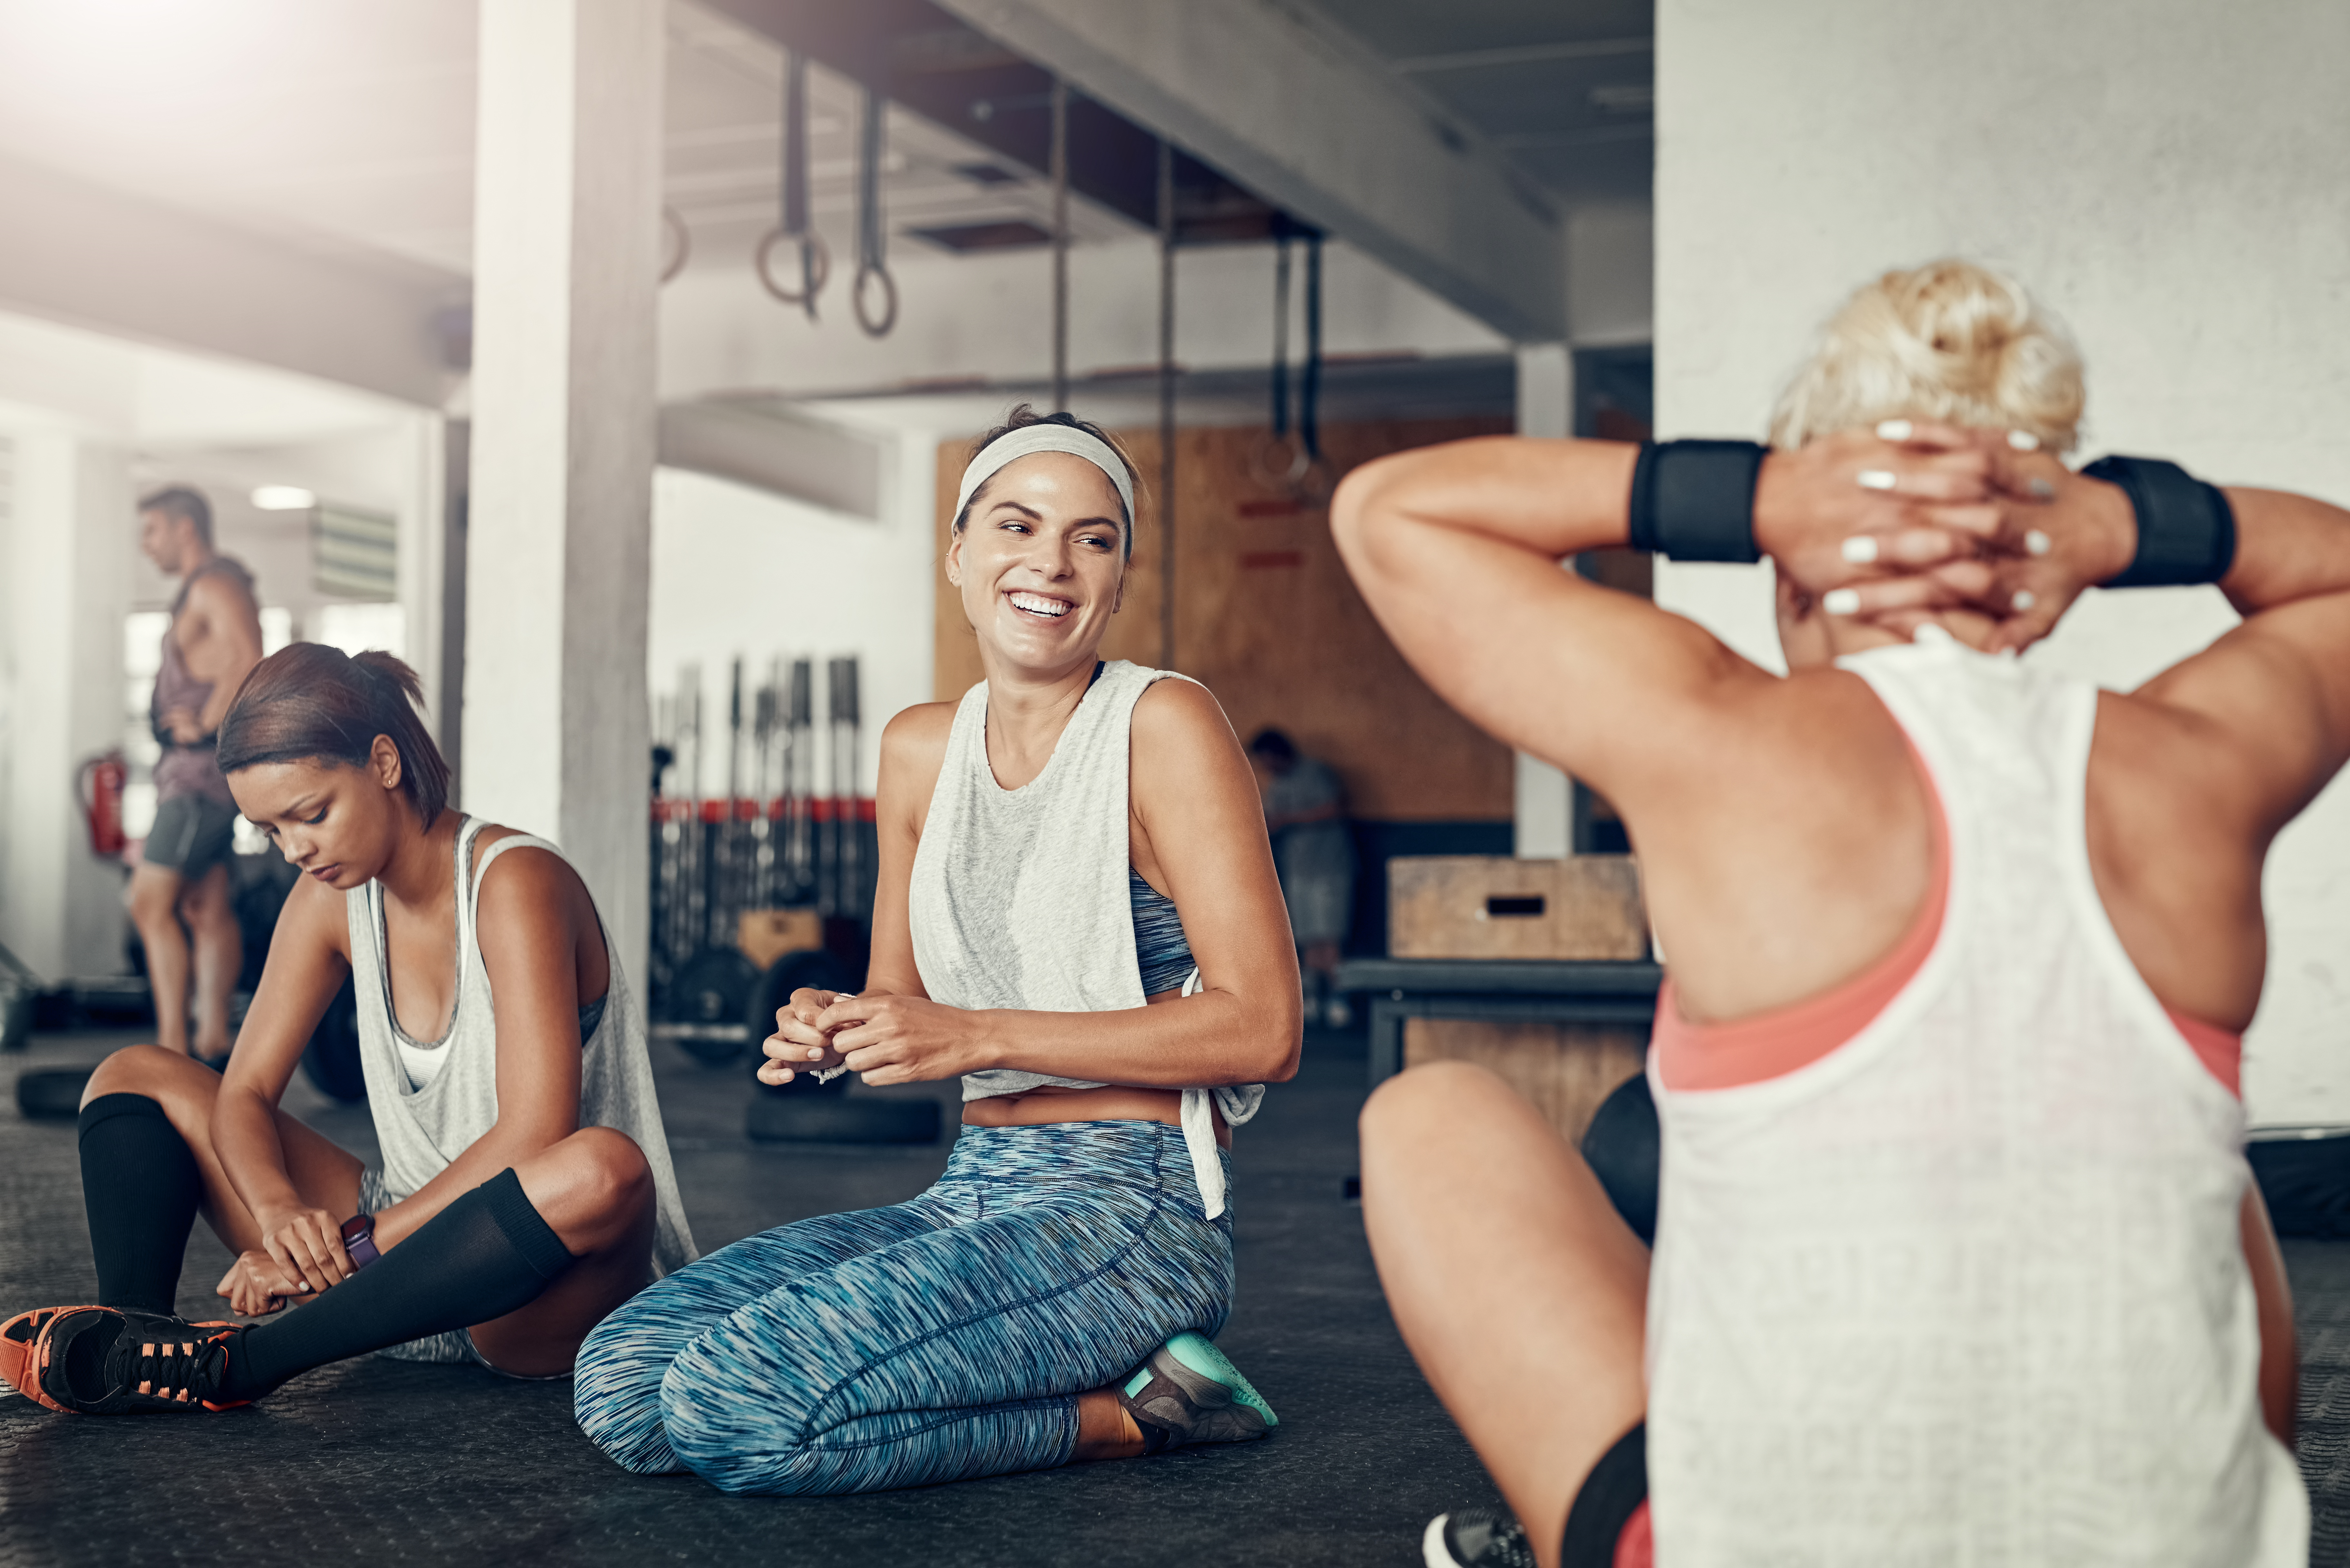 Shot of a group of young women taking a break together after a workout at the gym